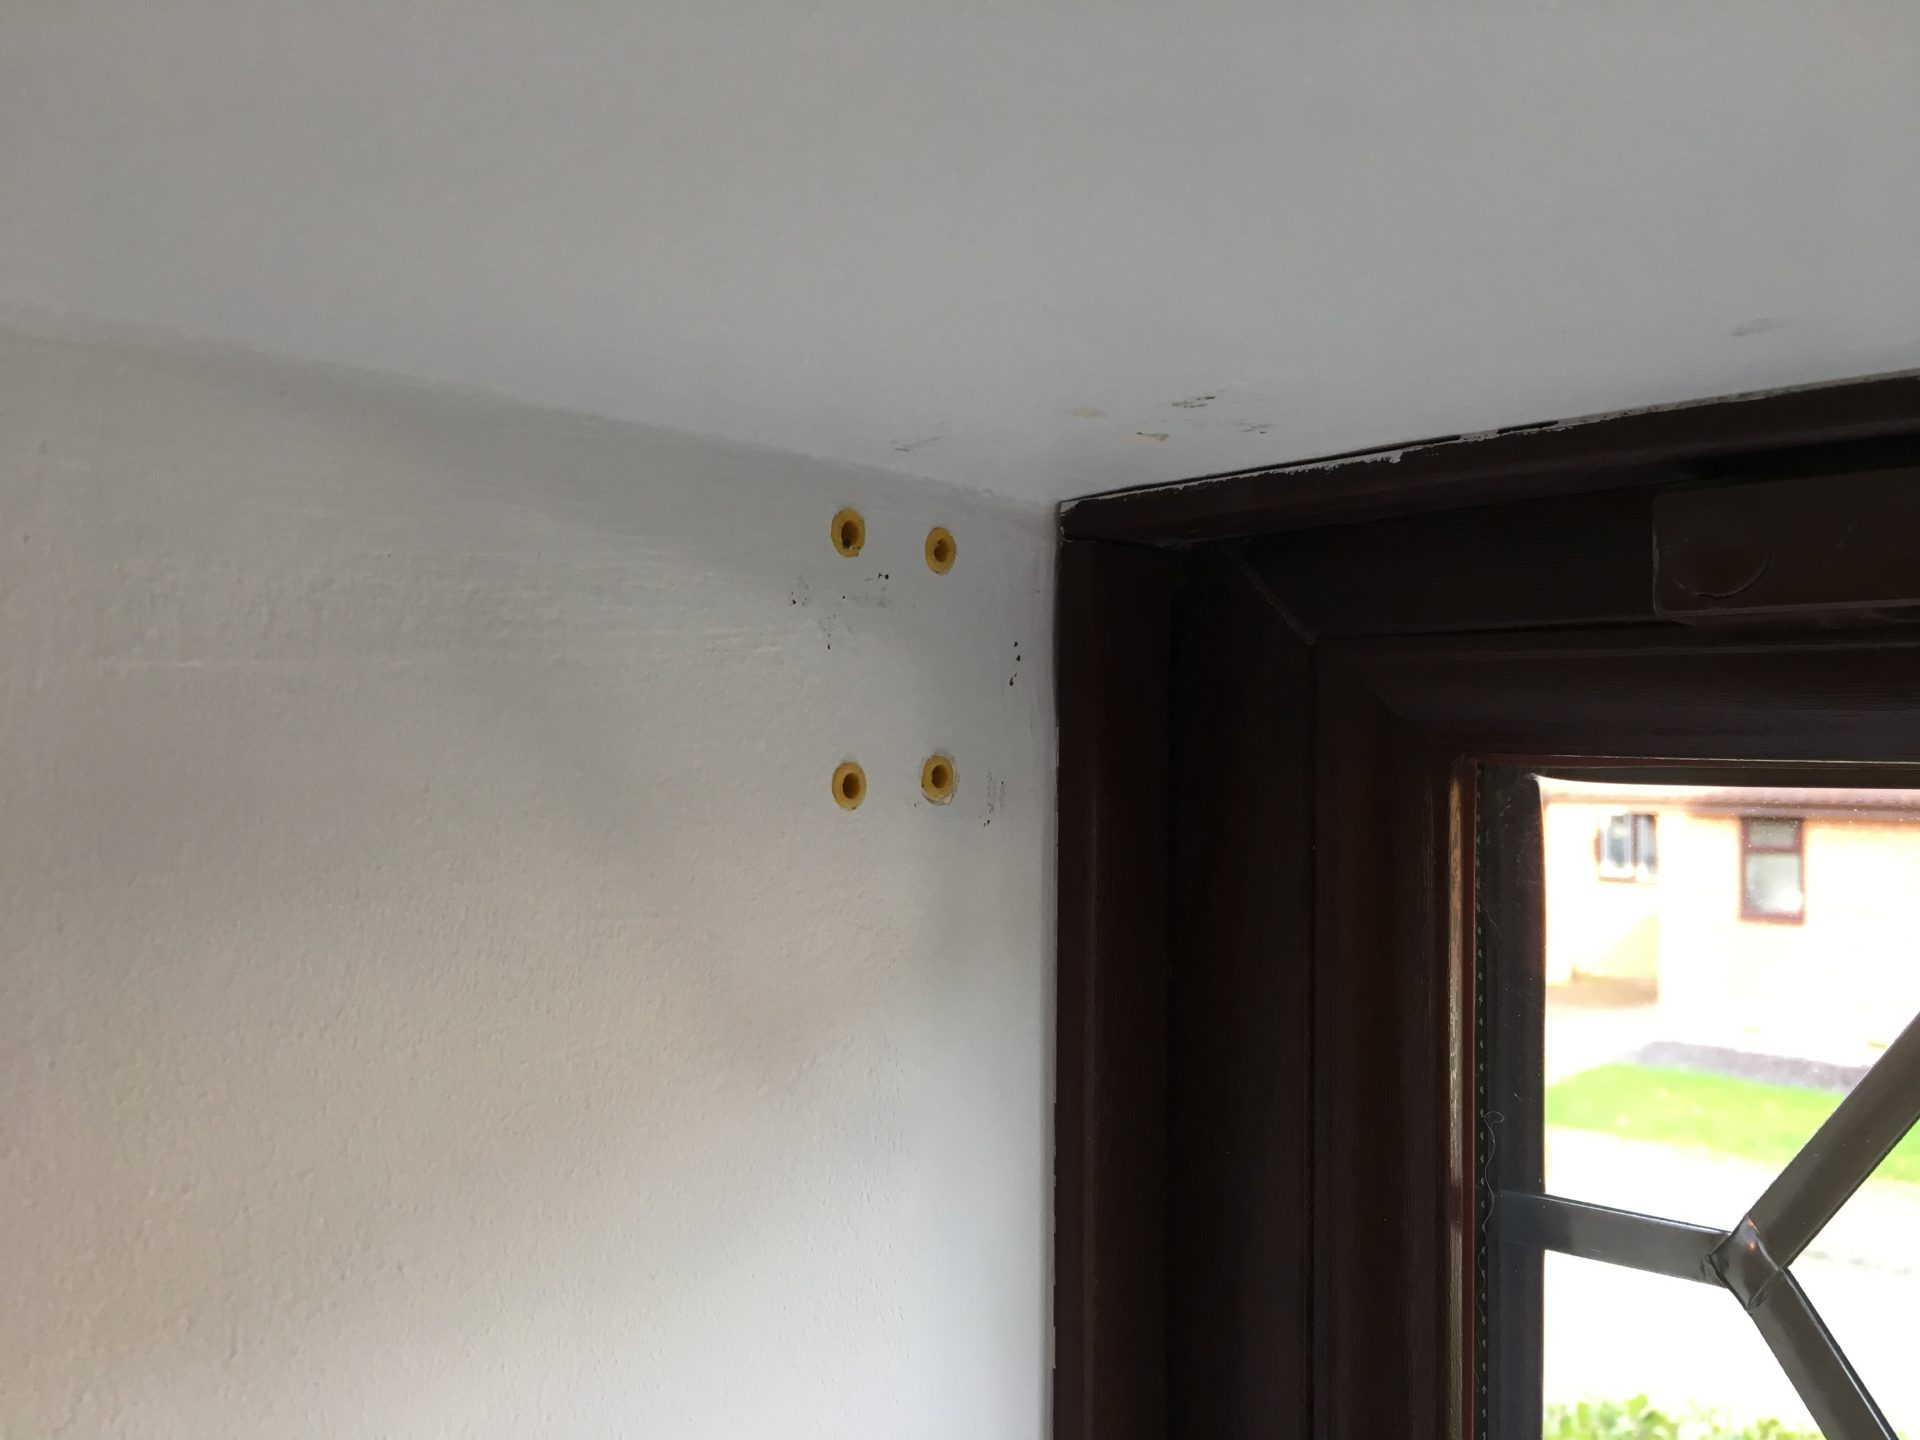 Fitting the Blinds to Go rawl plugs